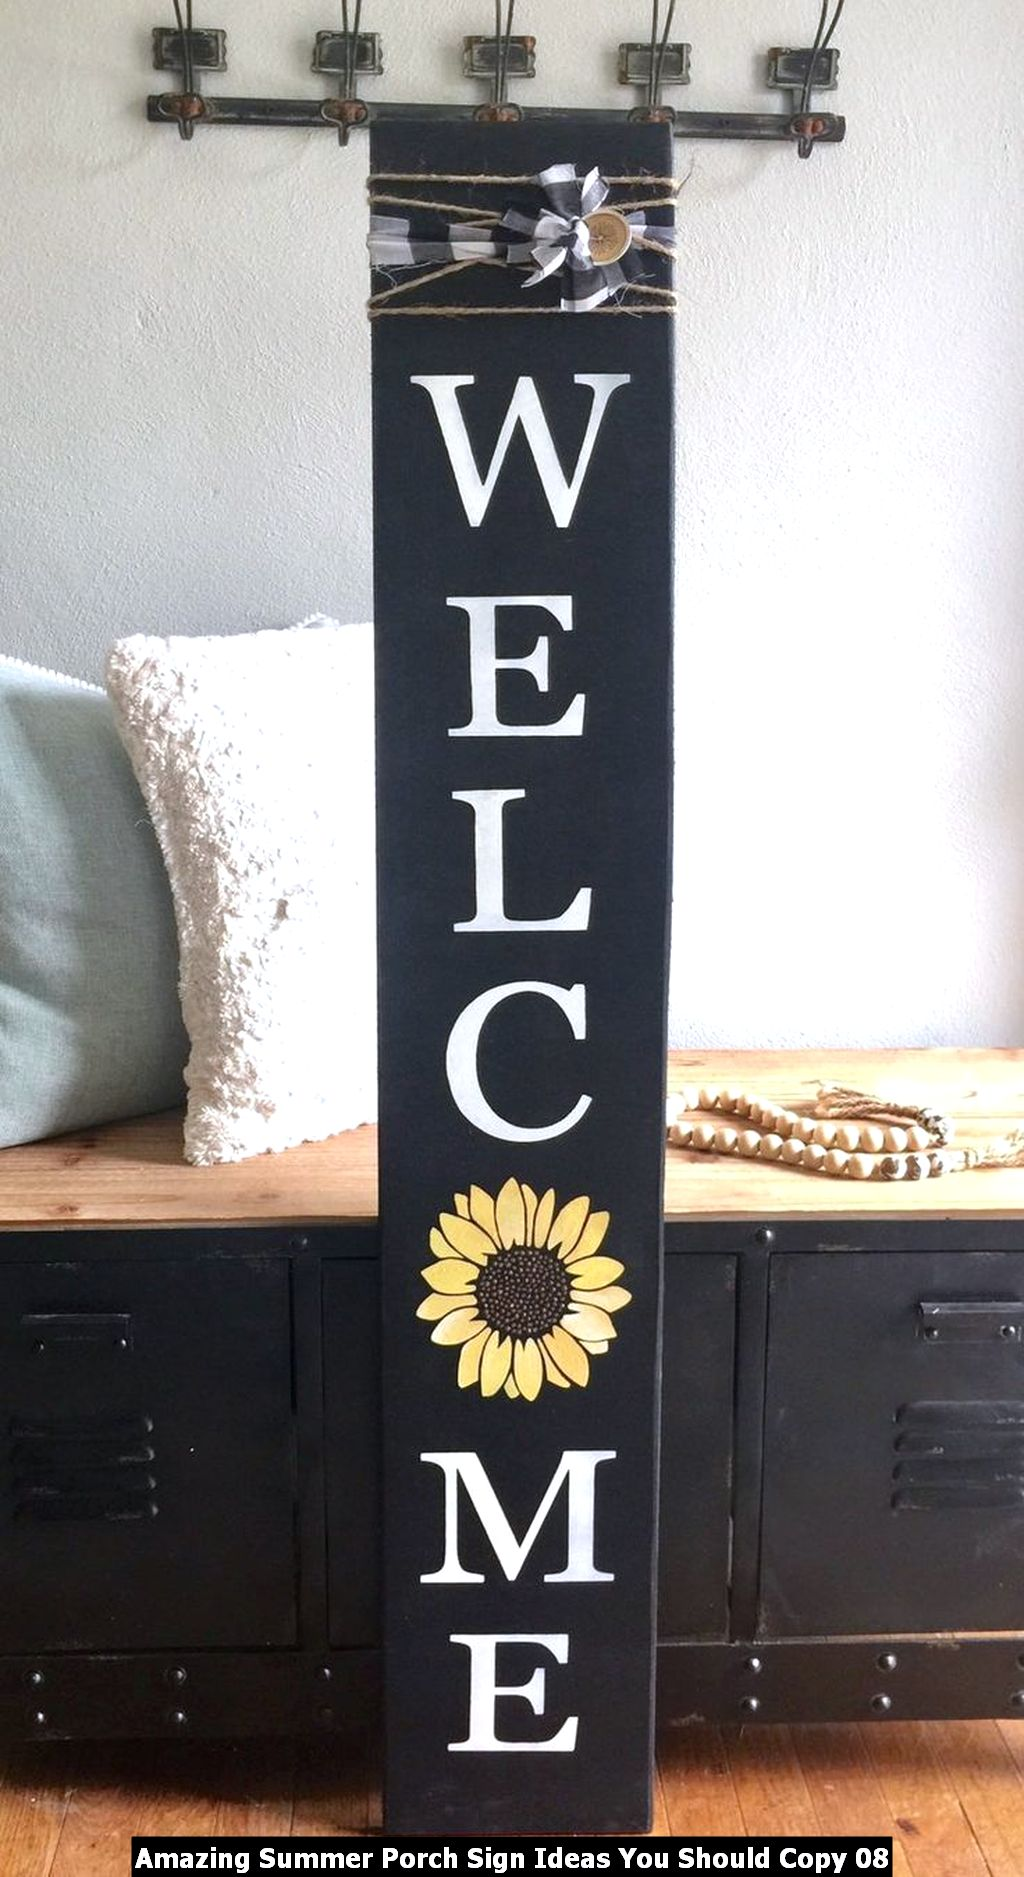 Amazing Summer Porch Sign Ideas You Should Copy 08